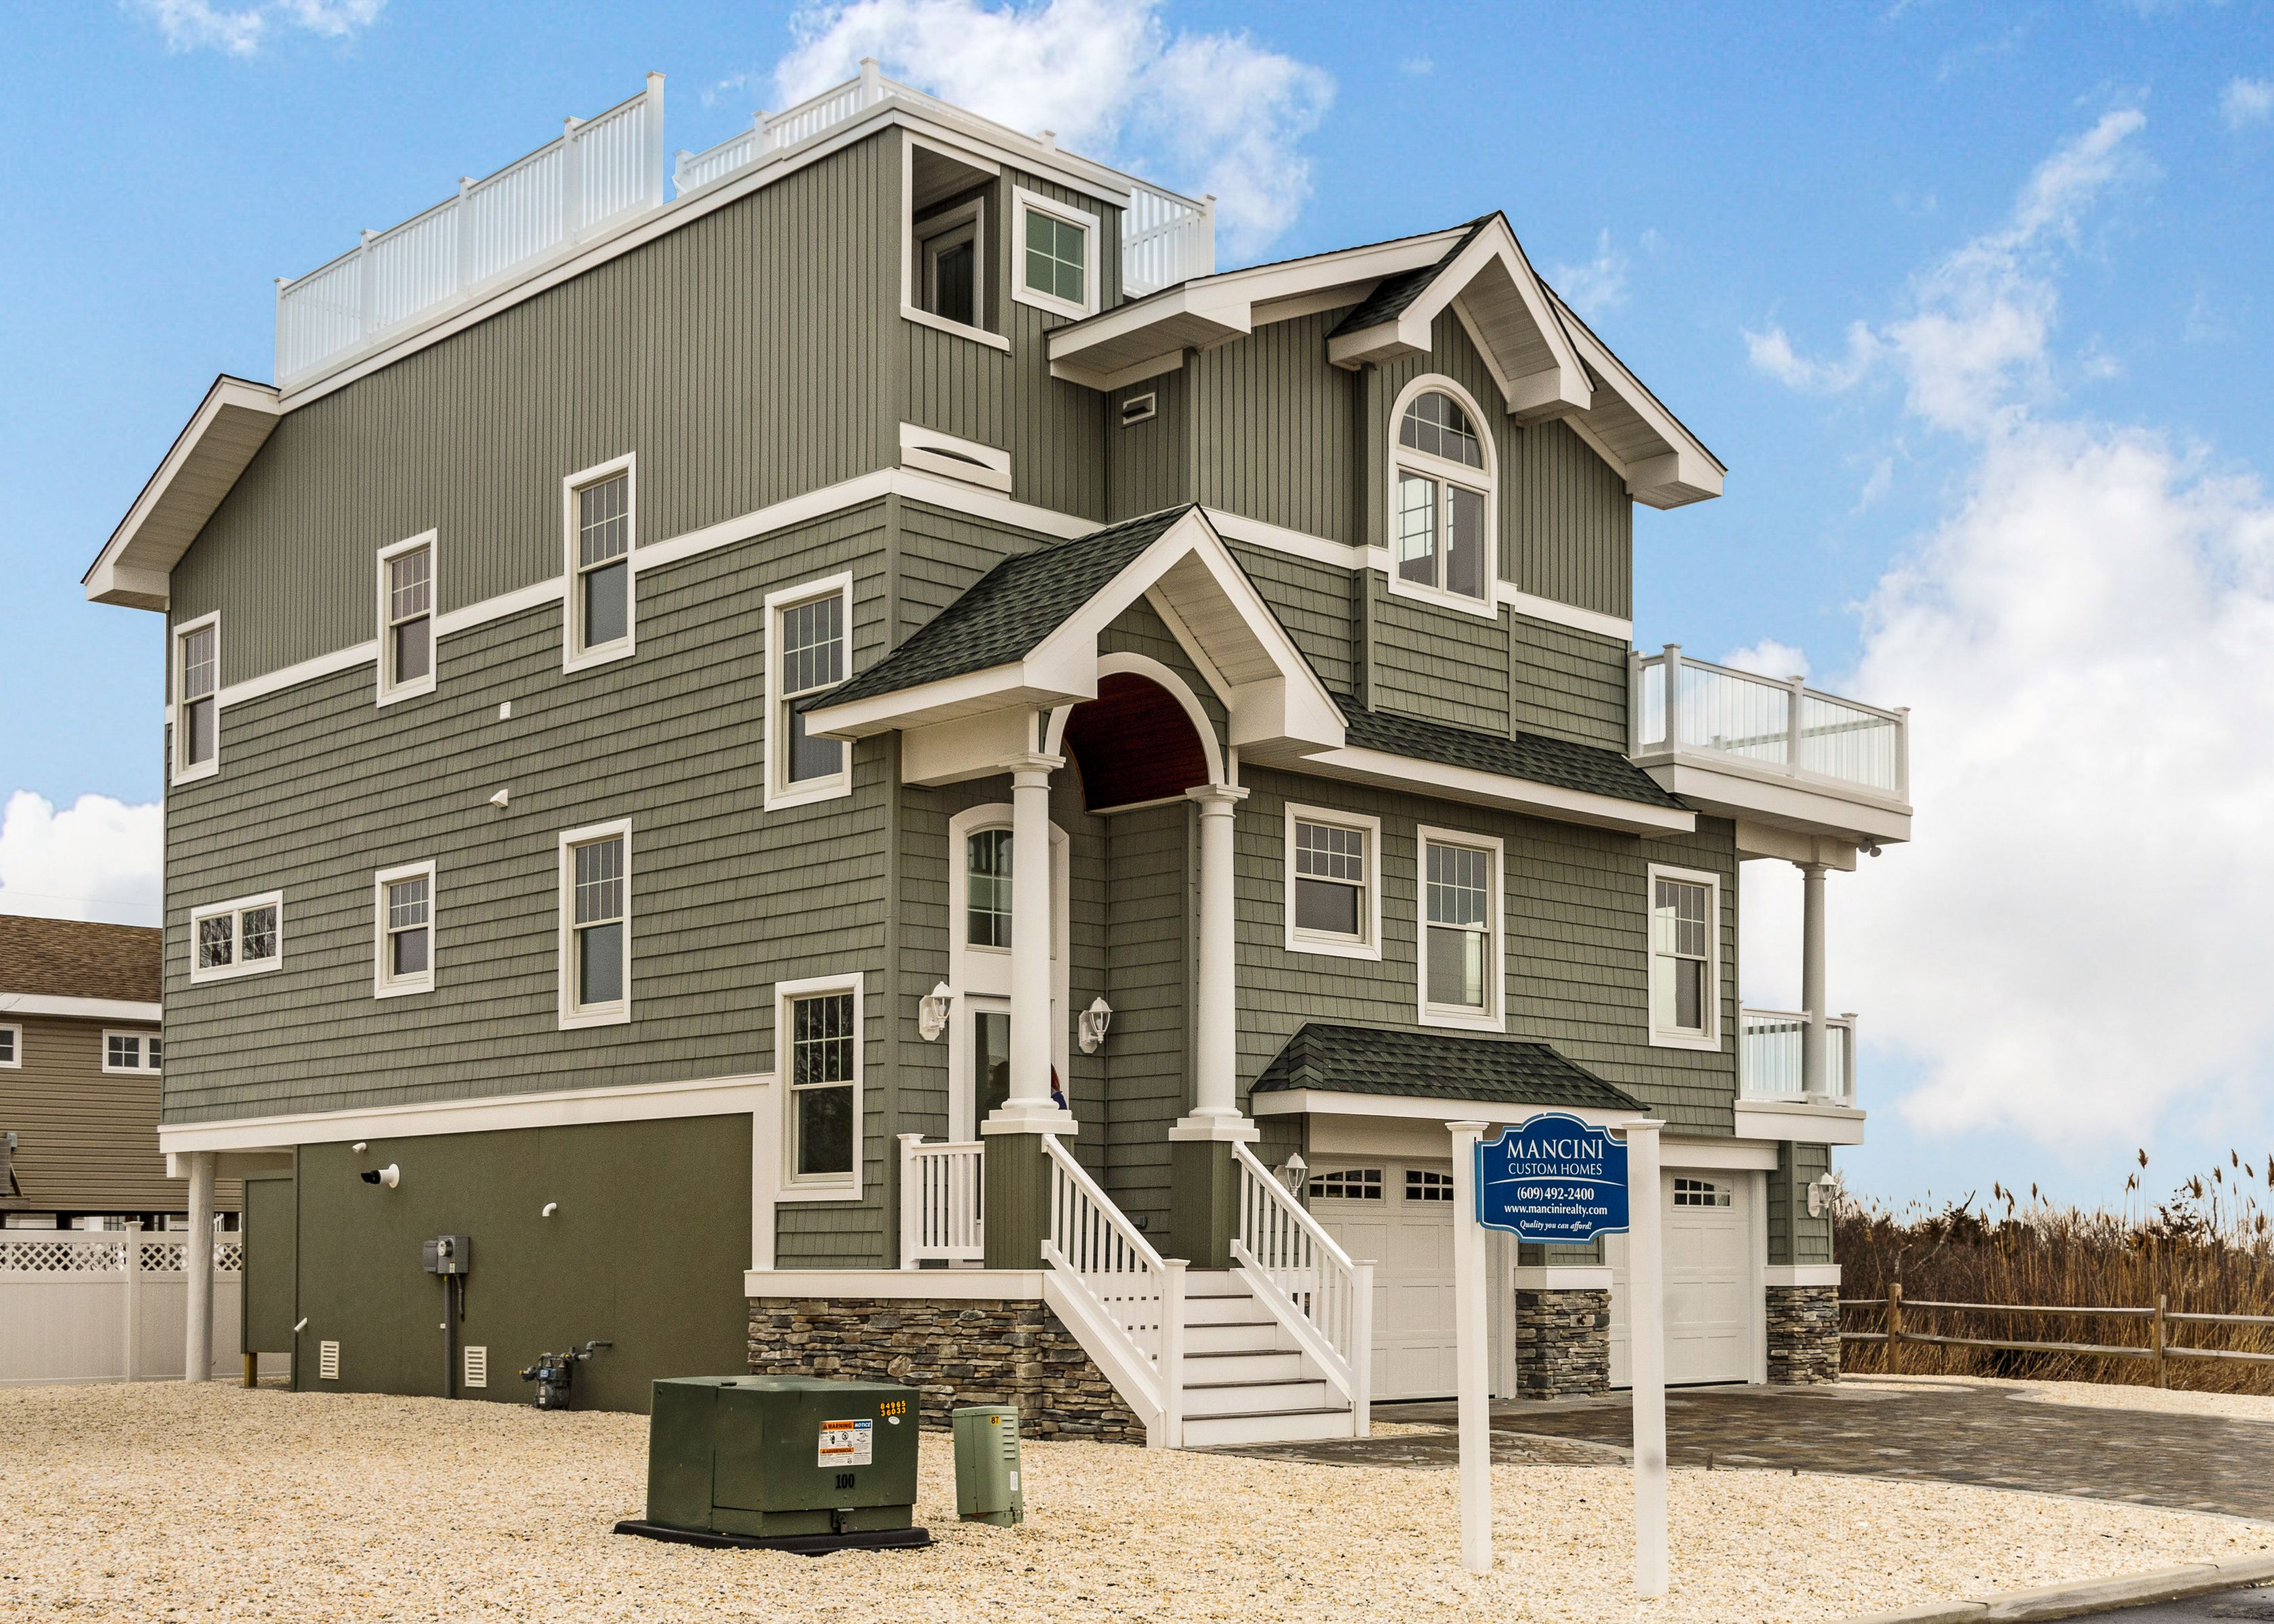 Fantastic Mancini Realty Built Home On Long Beach Island Lbi Holgate Beach Haven Nj Ph Selling Real Estate Real Estate Photography Sell Your House Fast